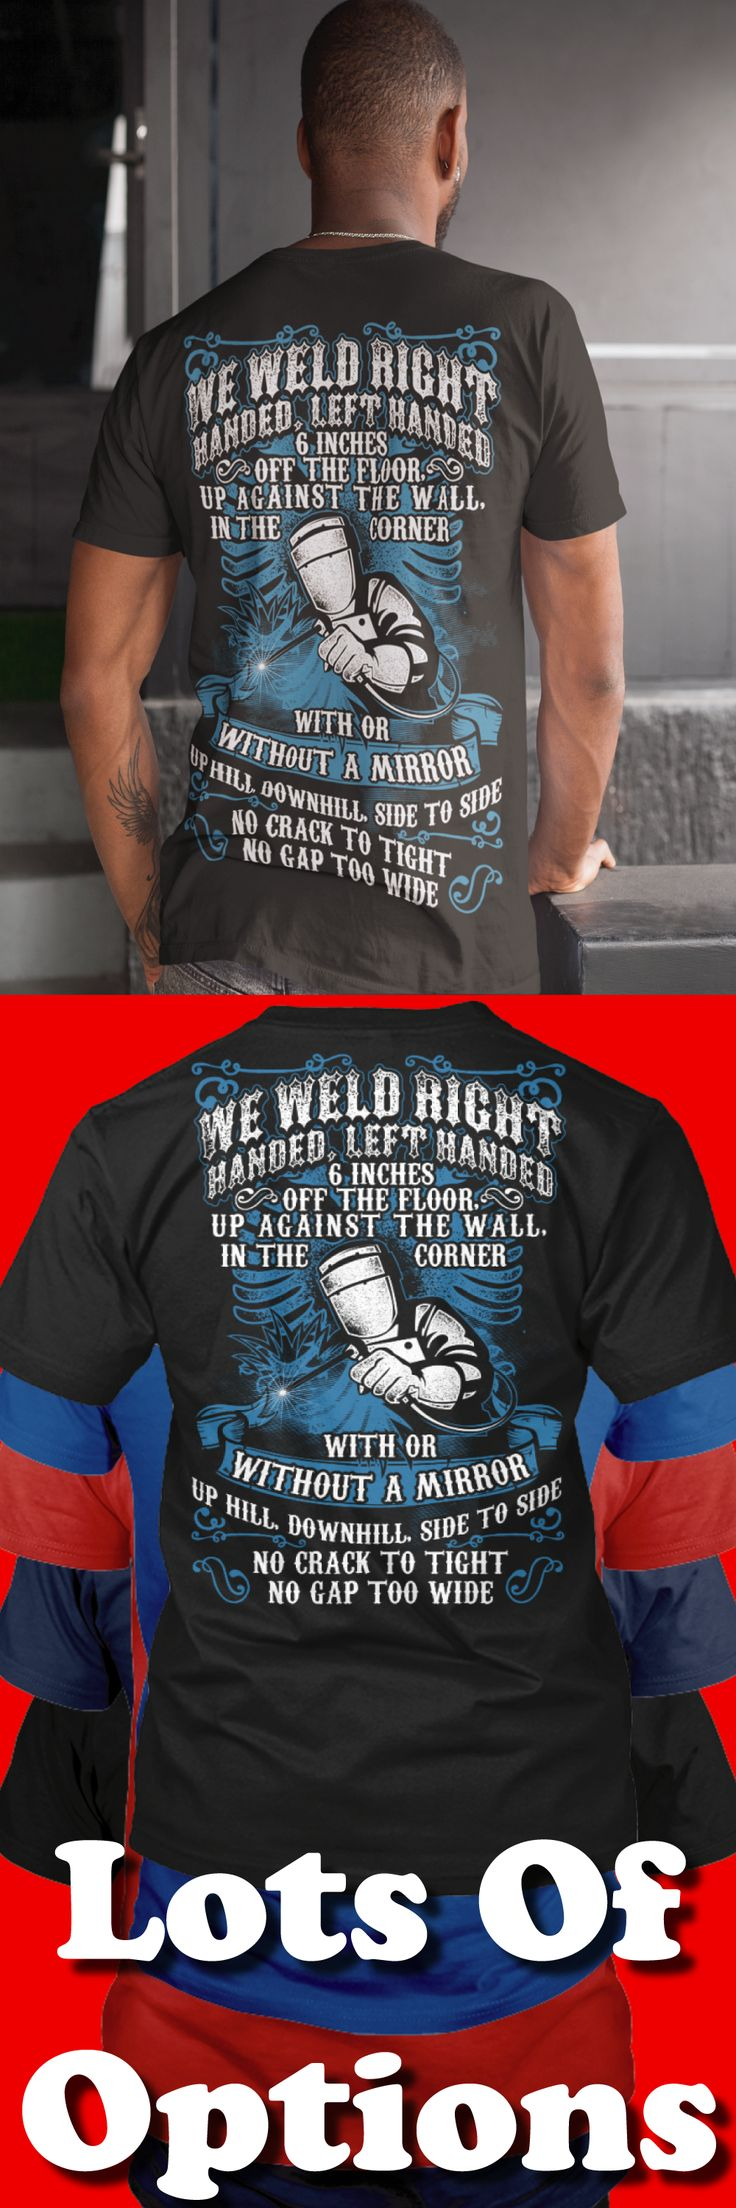 Welders Shirt: Are You A Welder? Wear Funny Welding Shirts? Great Welders Gift! Lots Of Sizes & Colors. Like Welder Shirts, Funny Welding T-shirts, Welding Sayings? Strict Limit Of 5 Shirts! Treat Yourself & Click Now! https://teespring.com/BT78-985